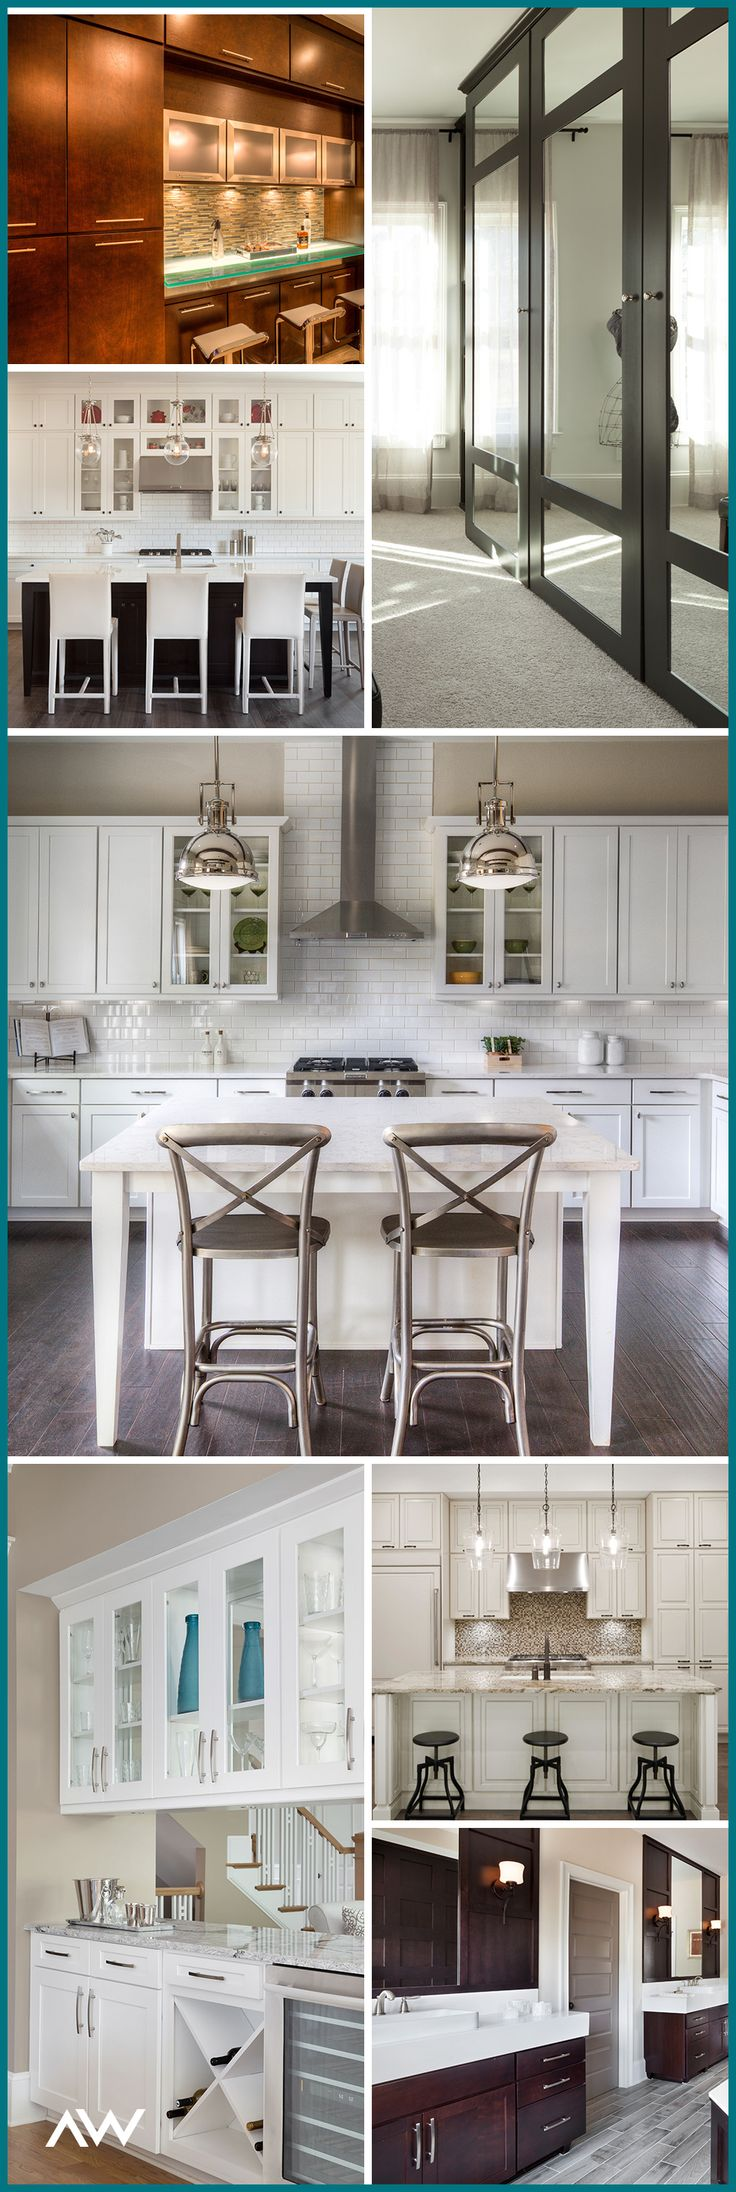 Ashton Woods Offers A Variety Of New Construction Communities And Homes In The Atlanta Area With Modern Floorplans Luxury Features Personalized